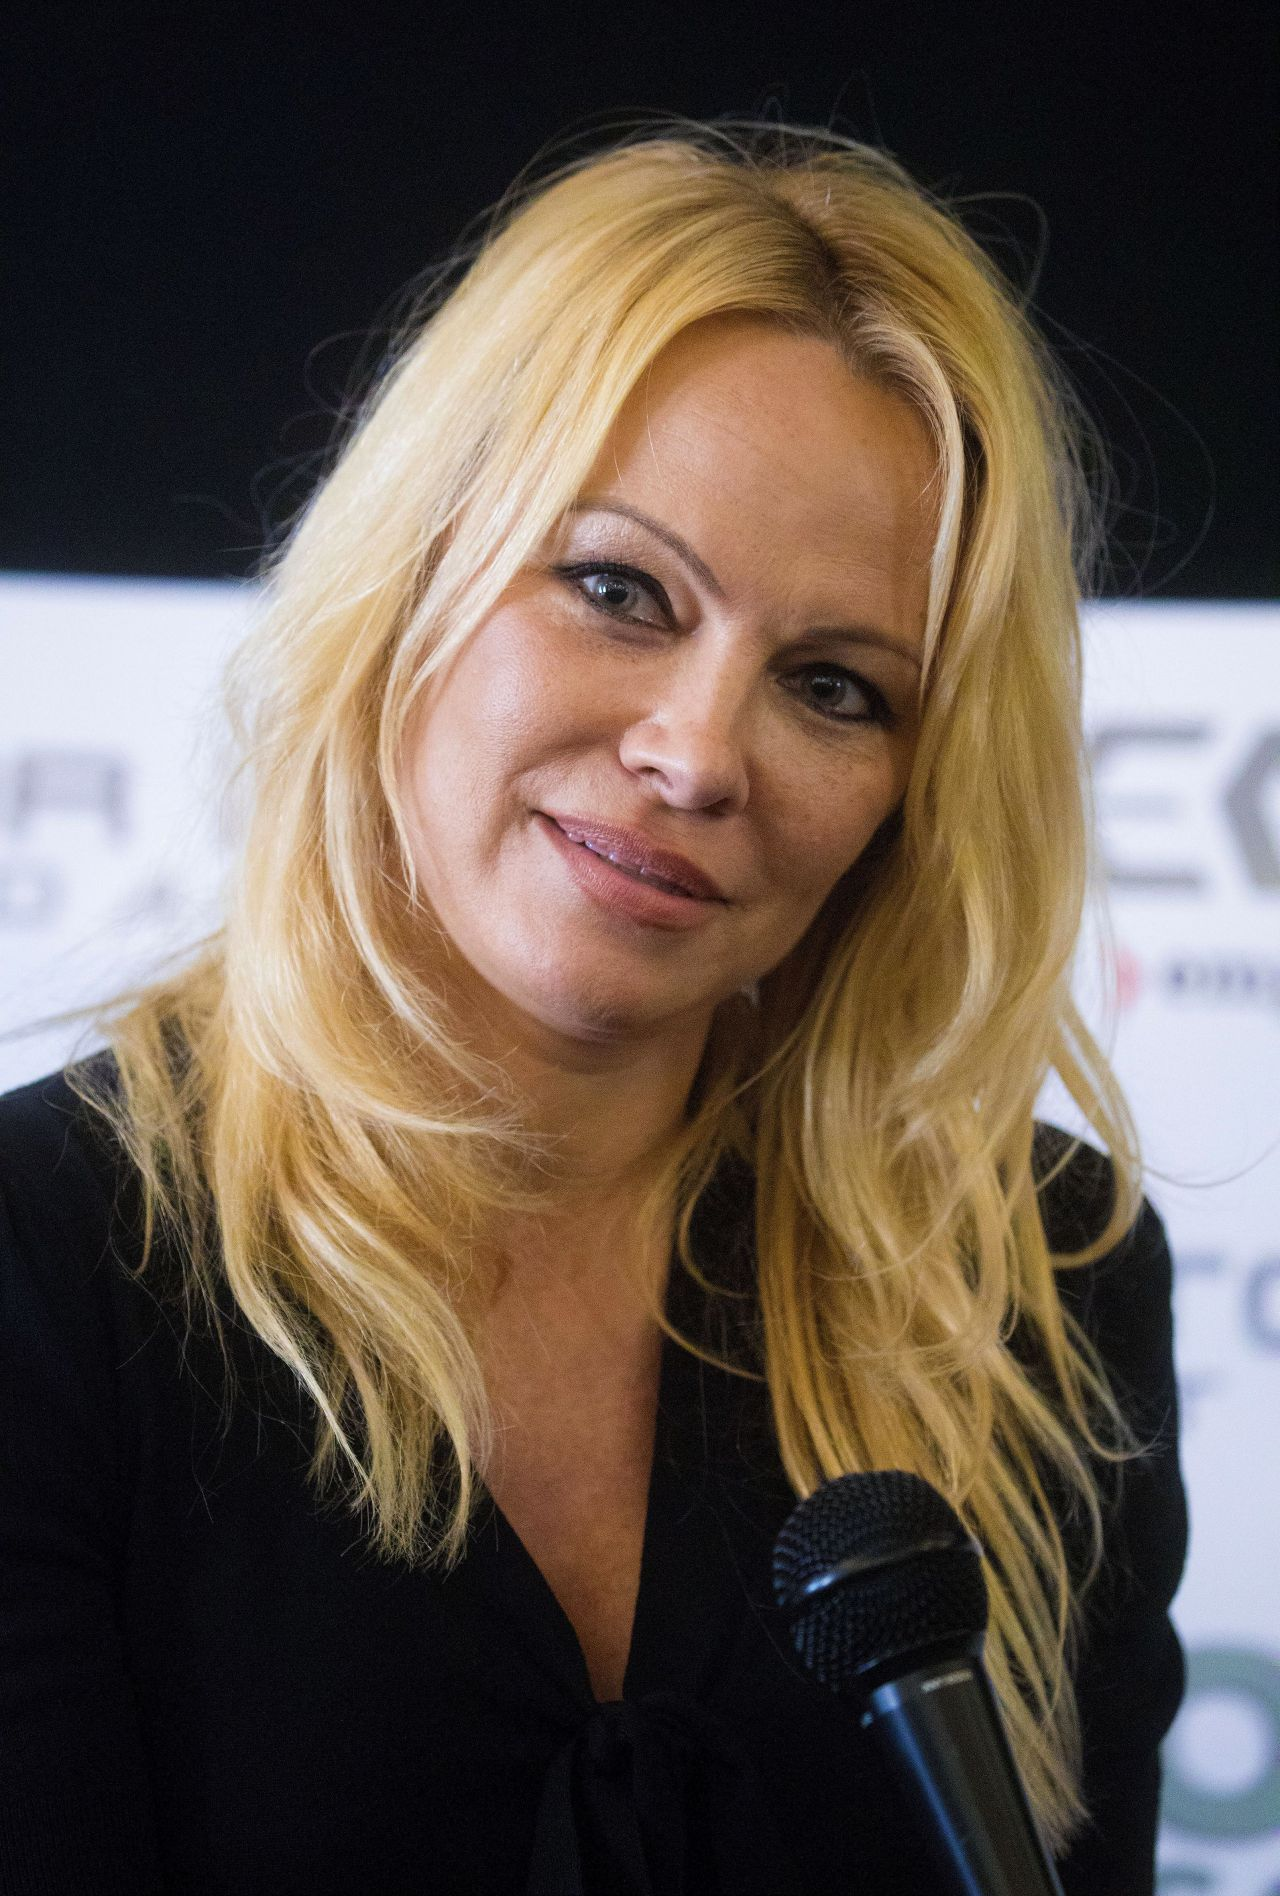 Smoking pamela anderson in porn showes can